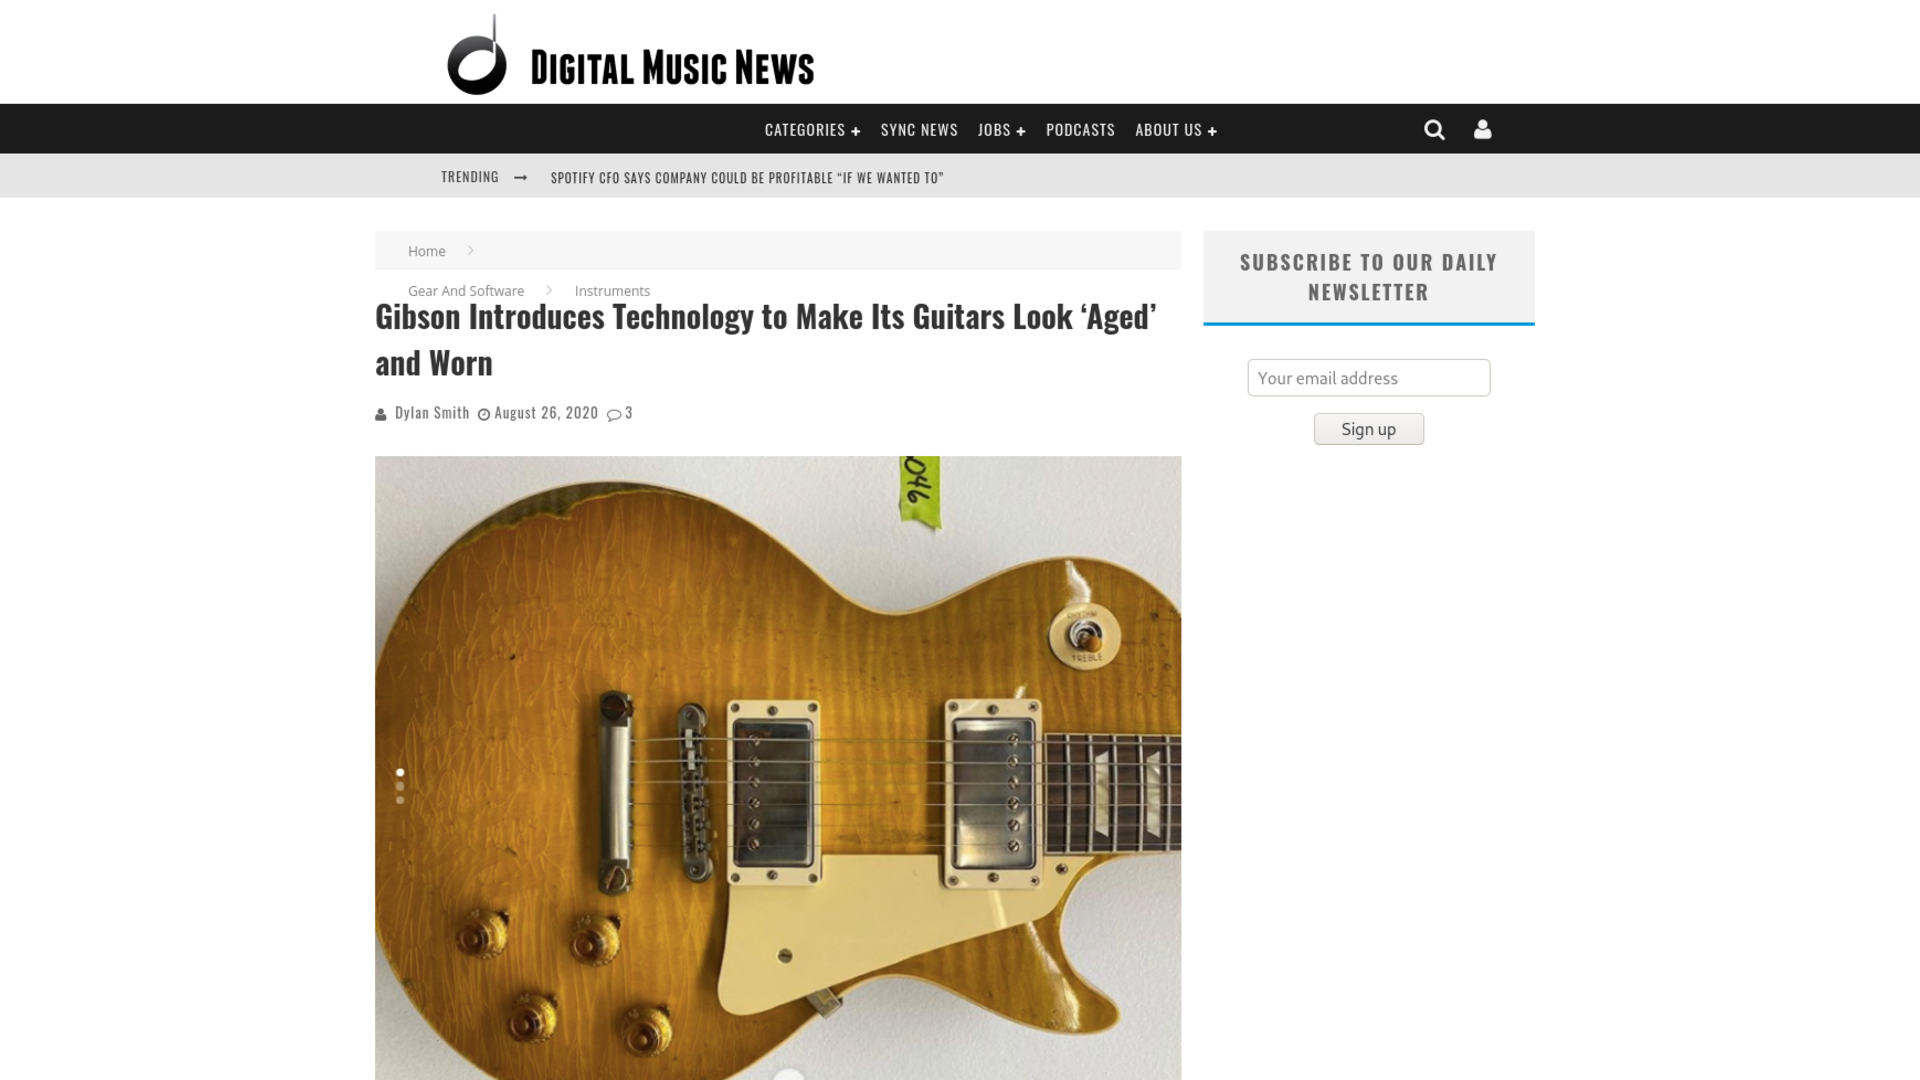 Fairness Rocks News Gibson Introduces Technology to Make Its Guitars Look 'Aged' and Worn